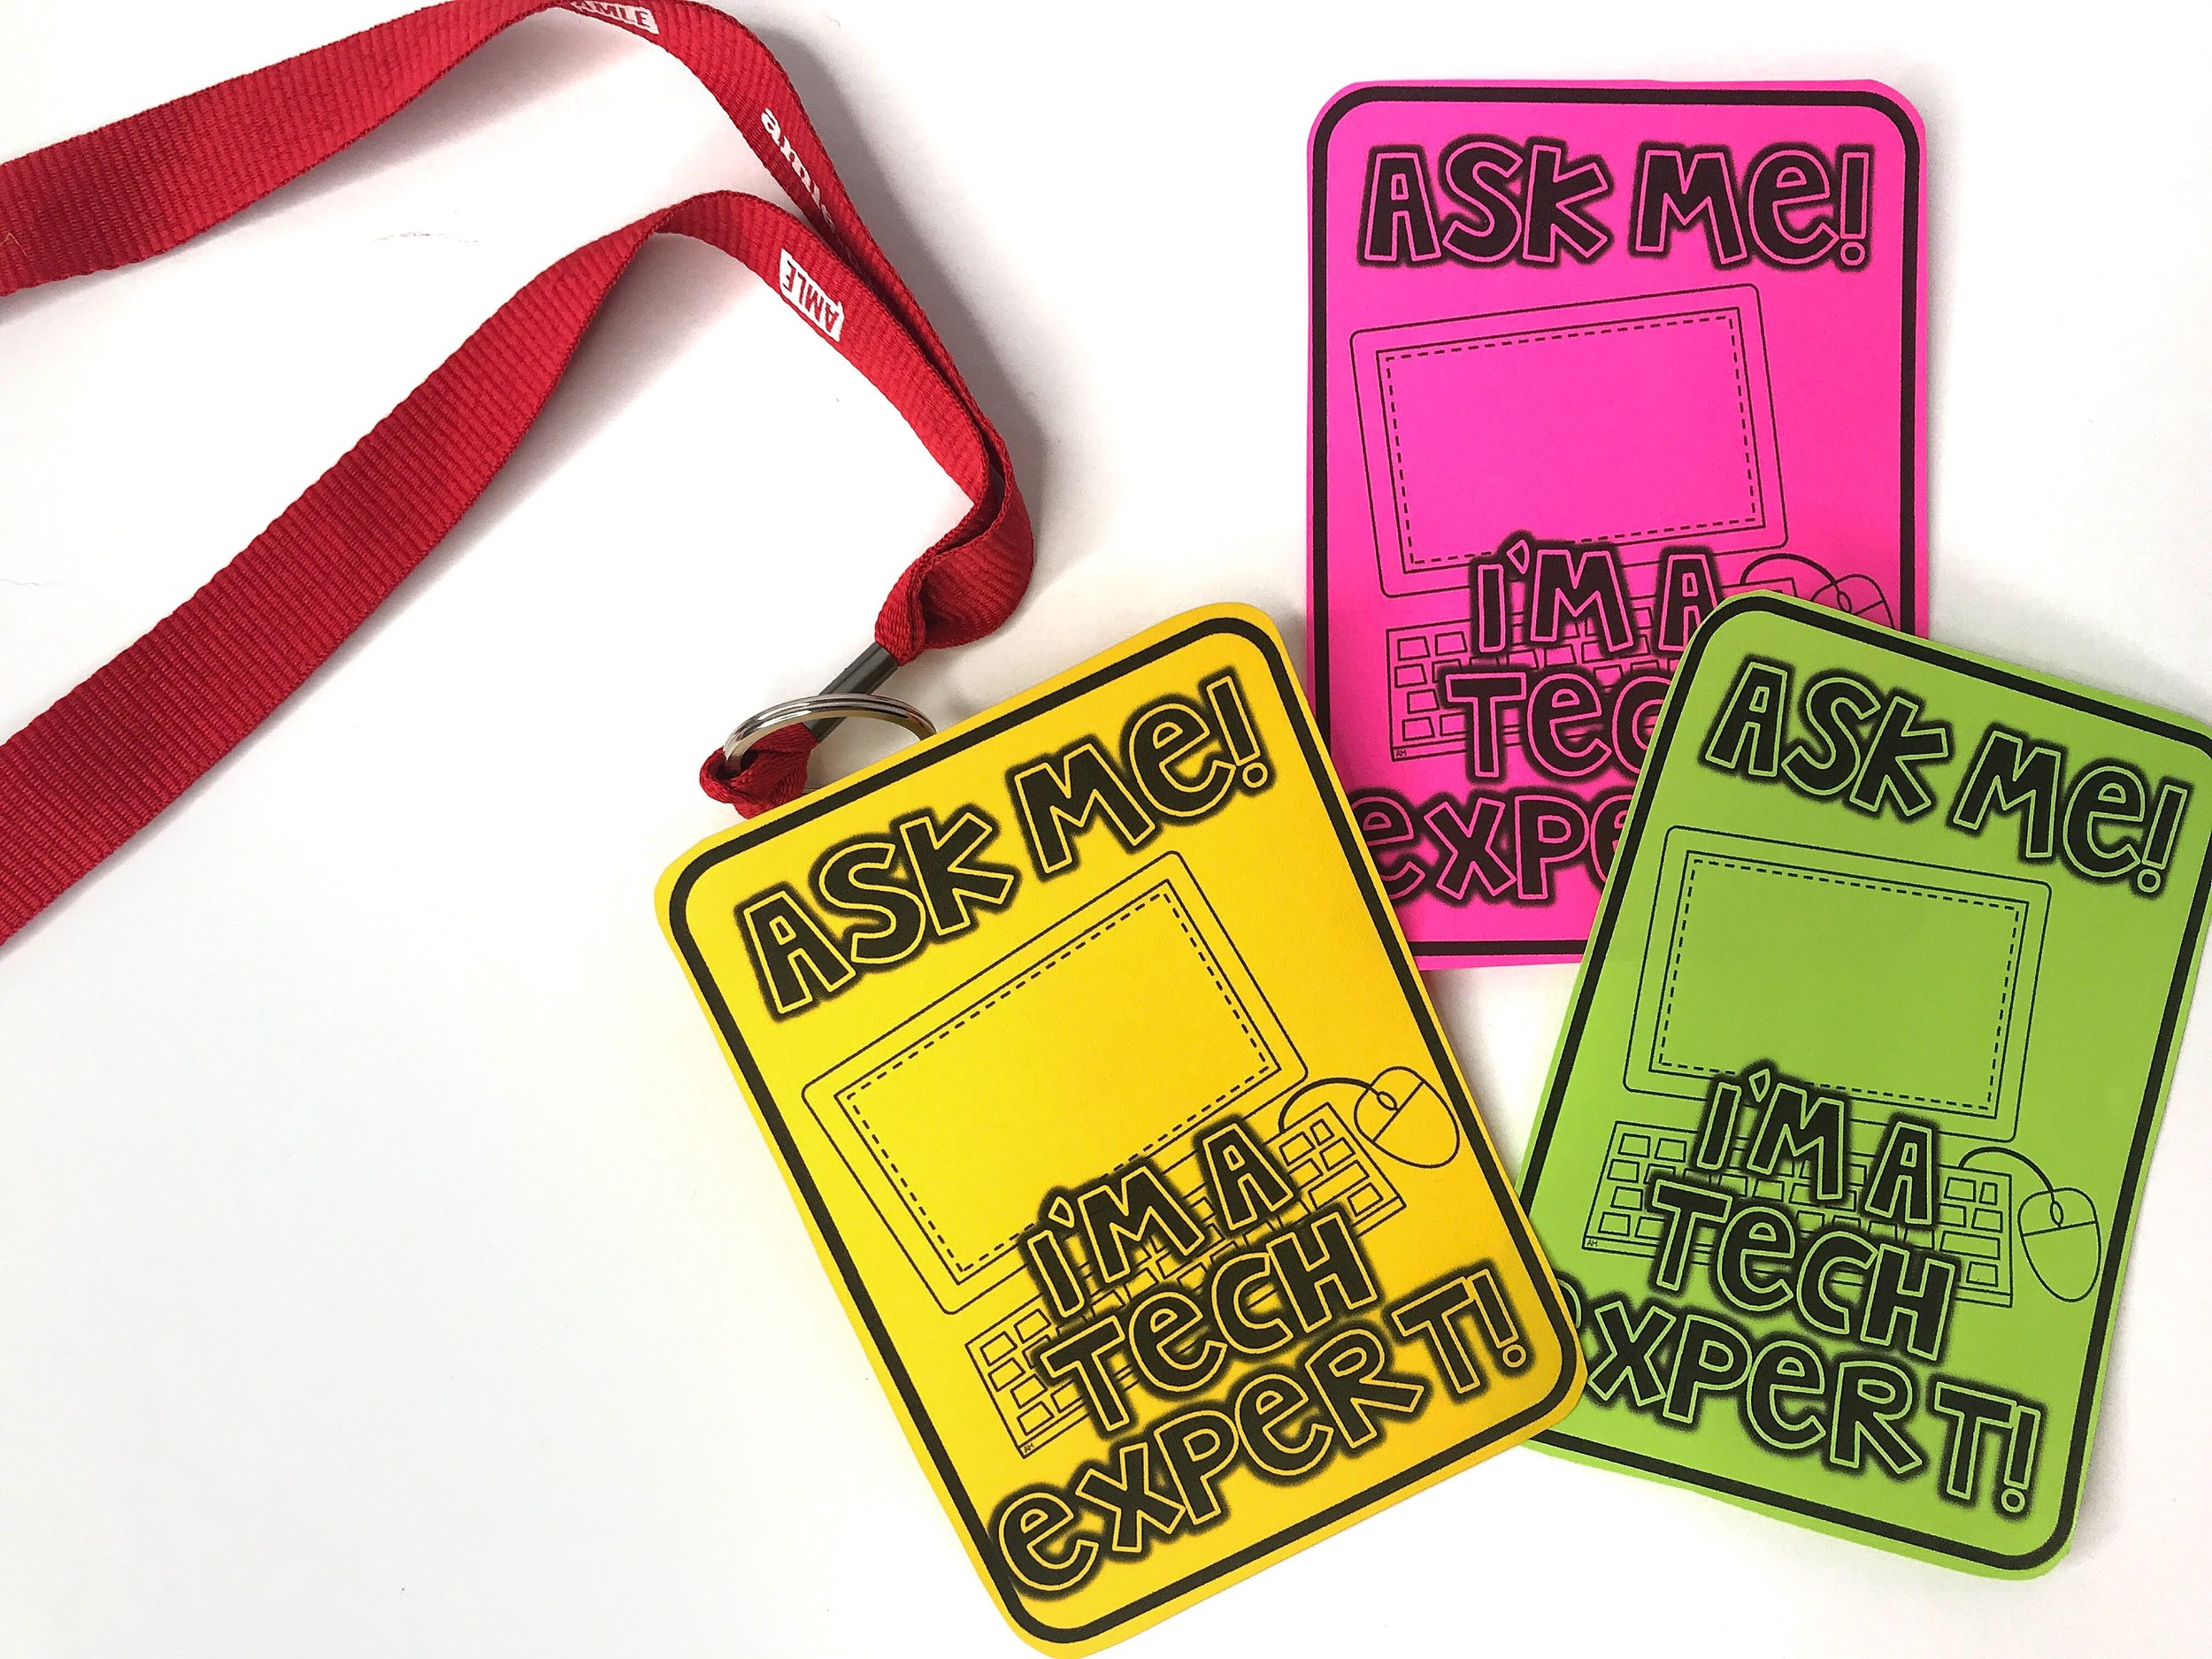 "Appoint several tech-savy students to be your ""Tech Experts"" and help answer some basic tech questions from their classmates. Give them a special badge so that other students can easily identify them"